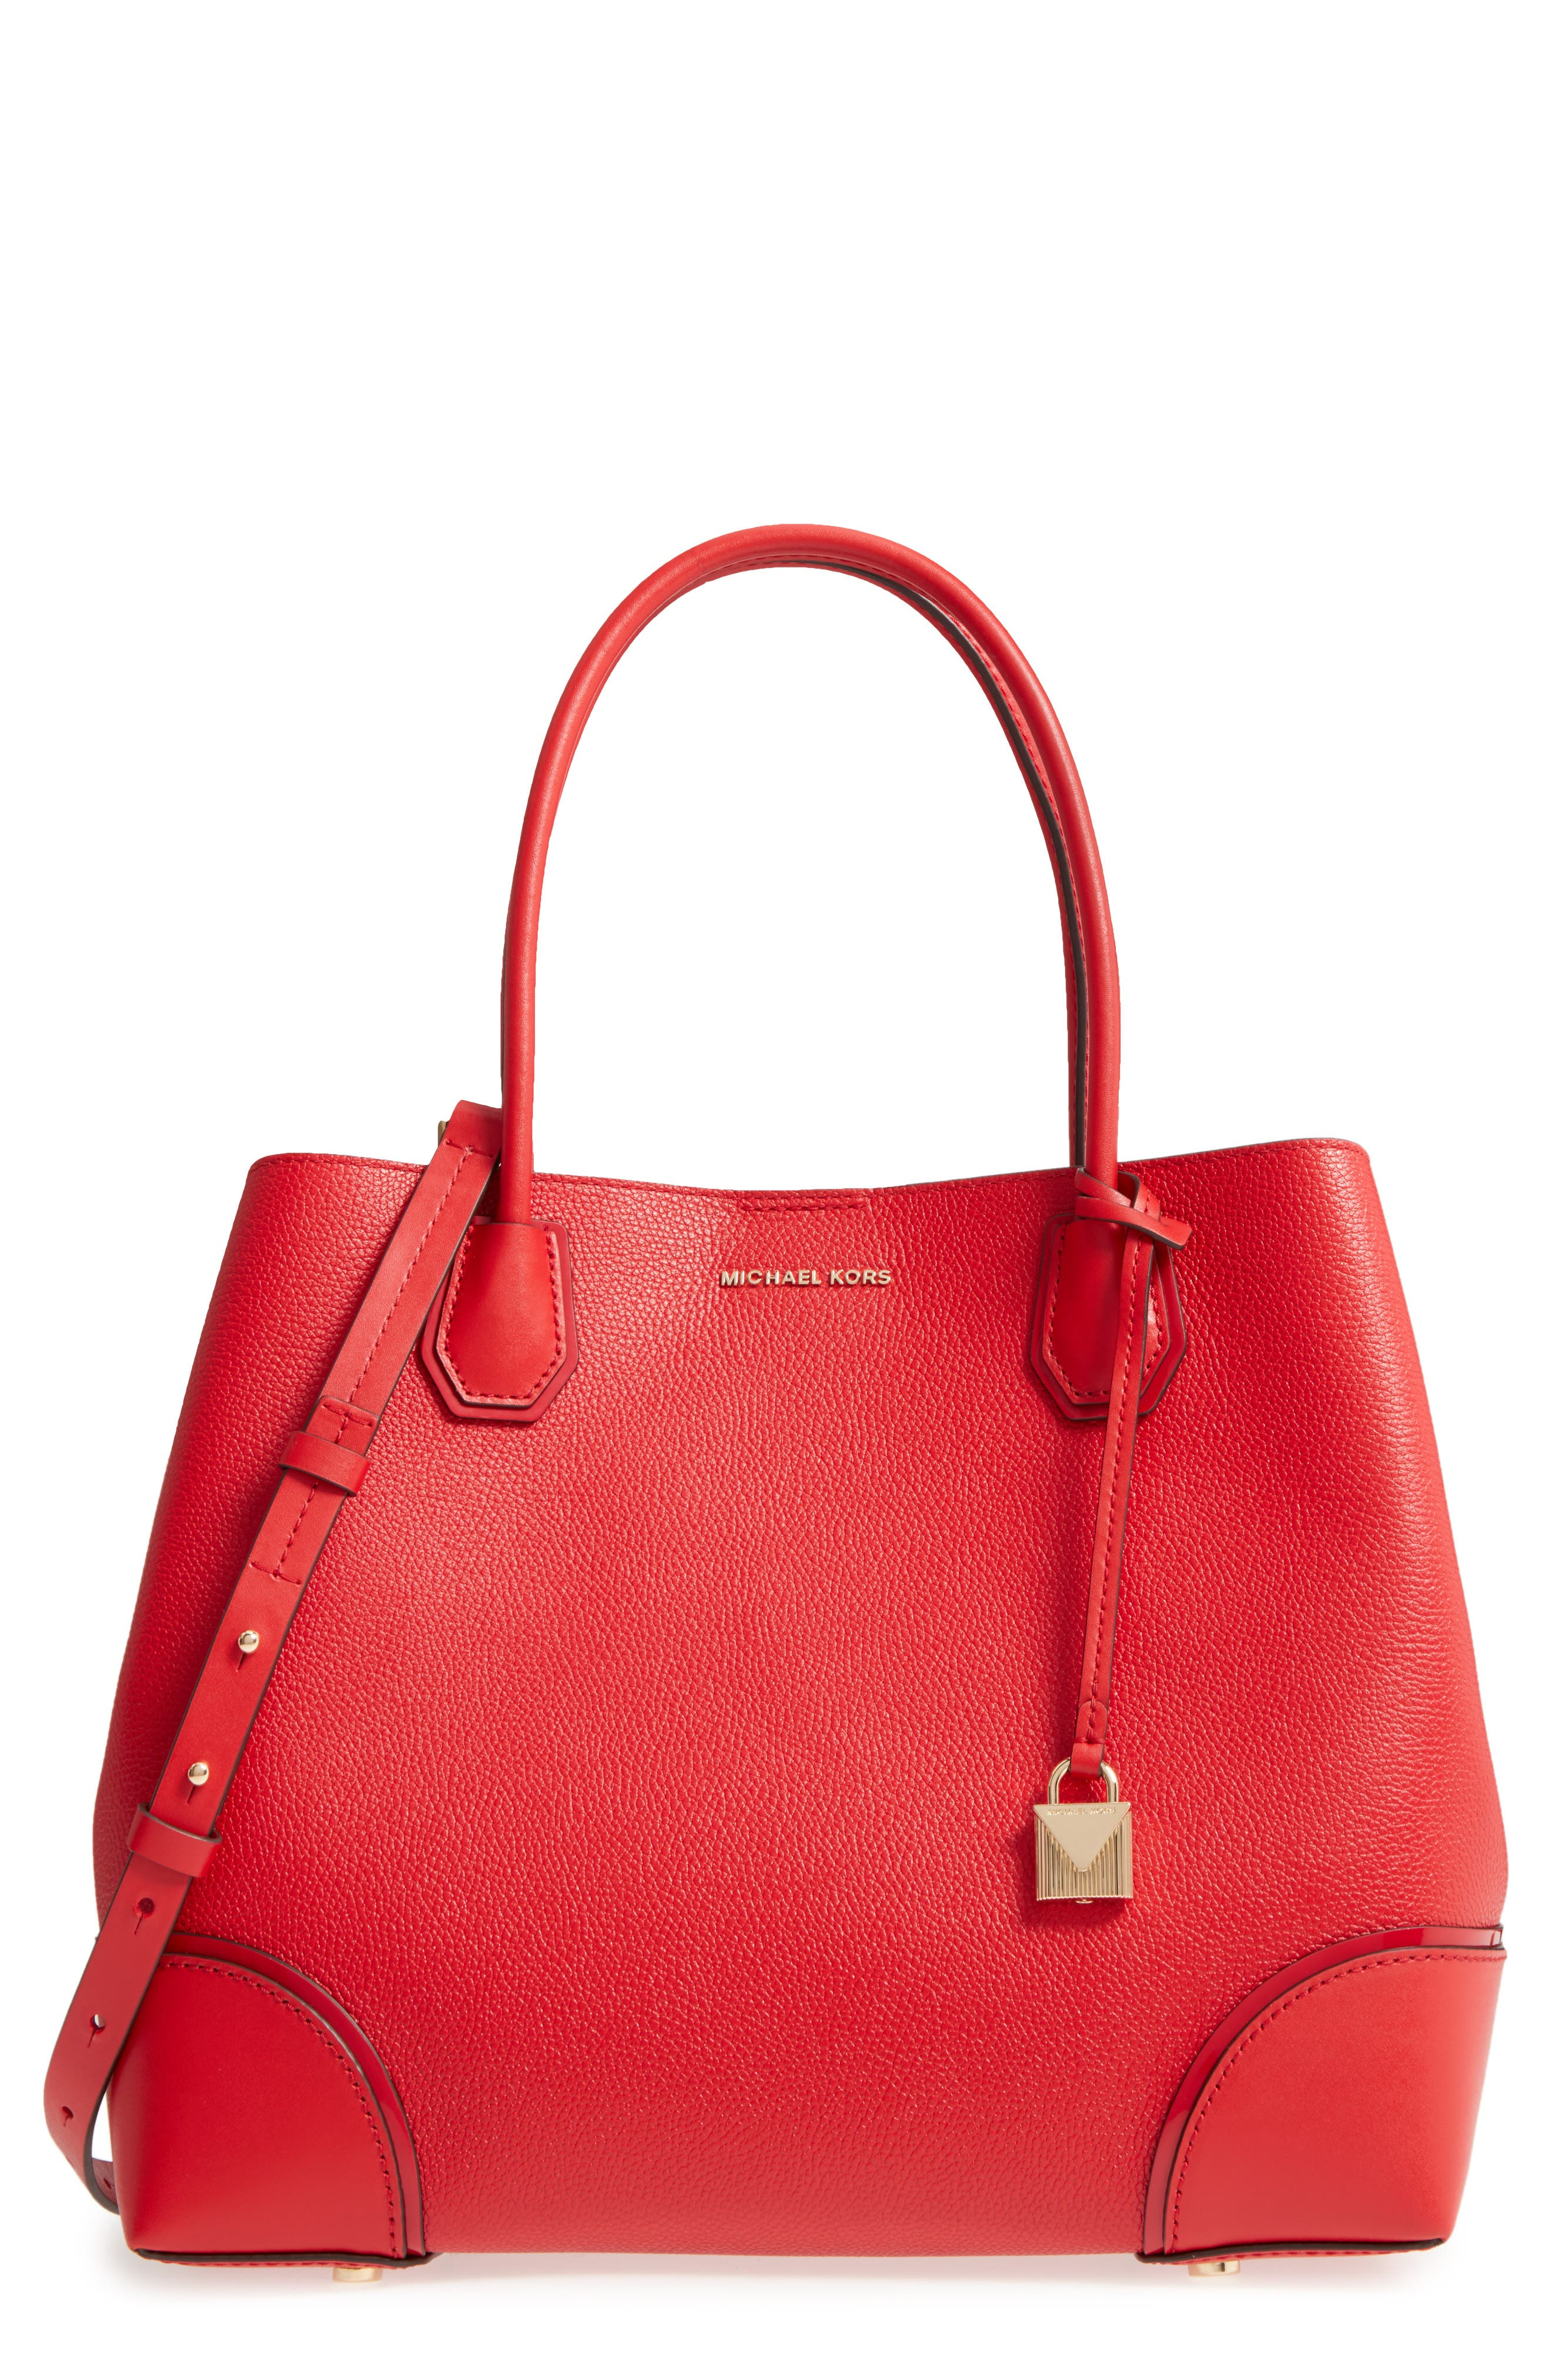 MICHAEL Michael Kors Large Mercer Leather Tote,                             Main thumbnail 1, color,                             Bright Red